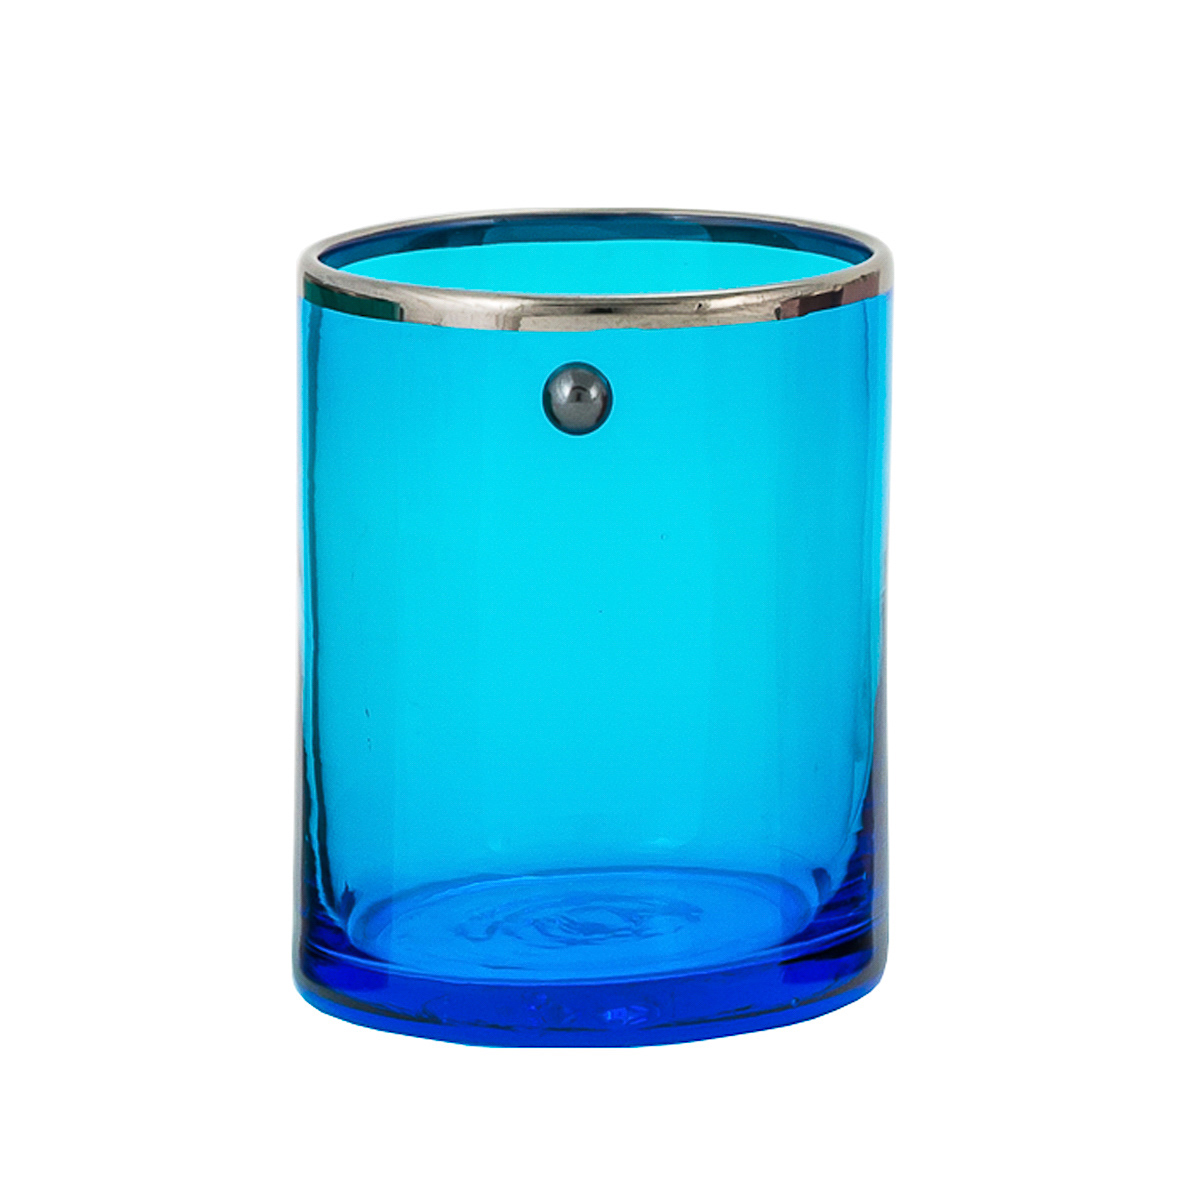 jai-acquamare-glass-shot-vodka-murano-venice-handmade-platinum-rim-luxury